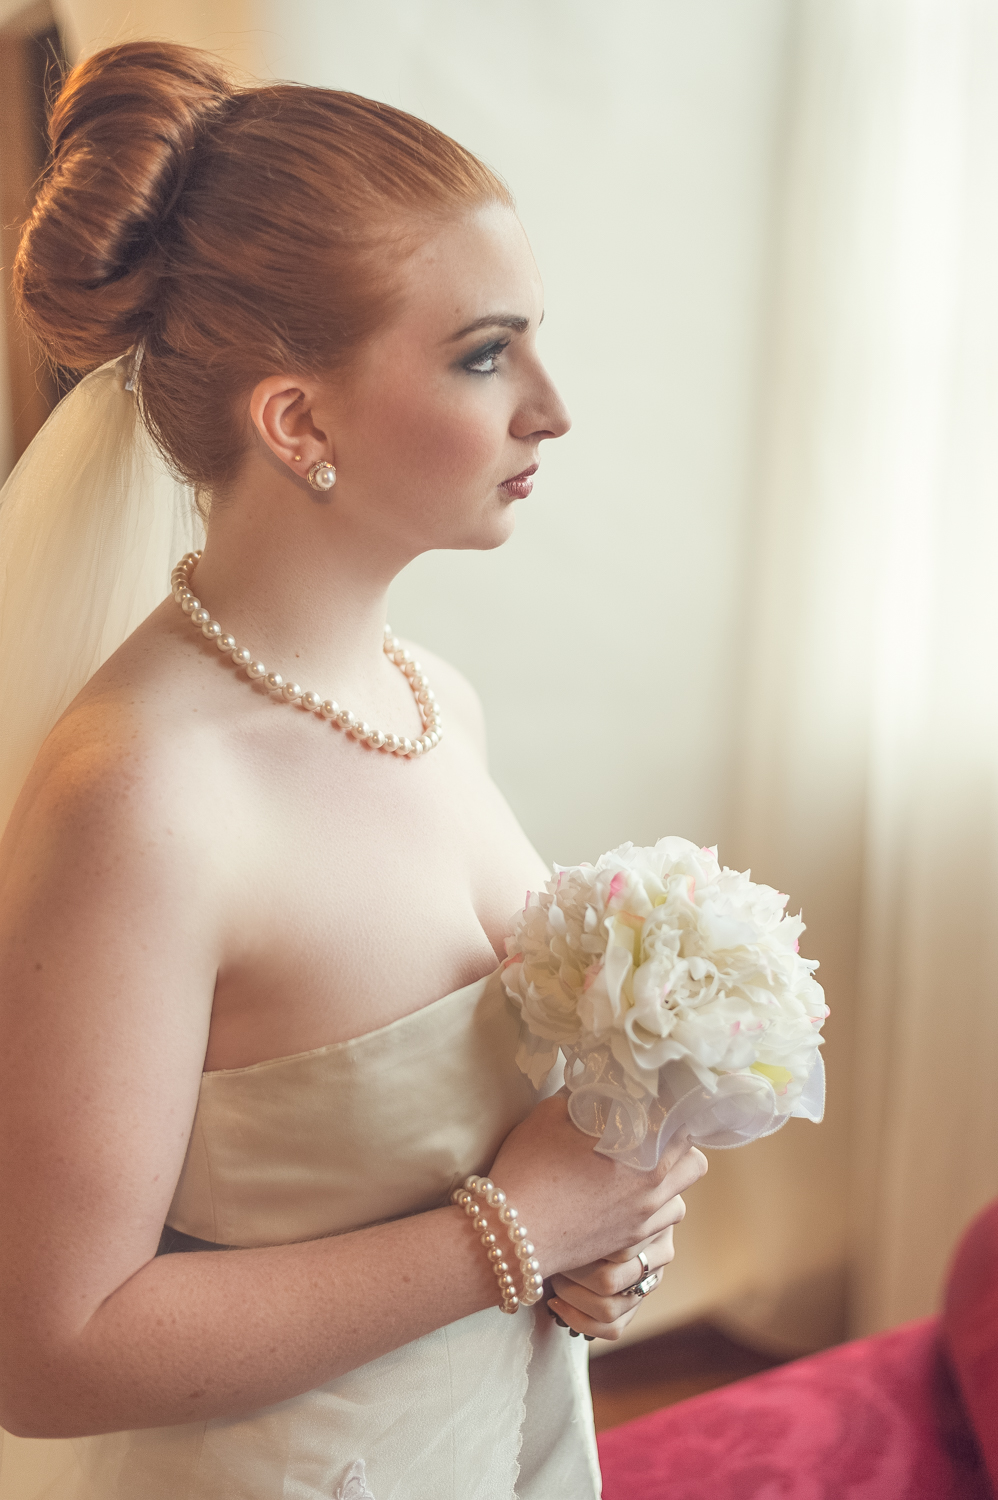 Bridal Editorial Wedding Photography - Toronto and Hamilton Photographer -Marek Michalek 07.jpg